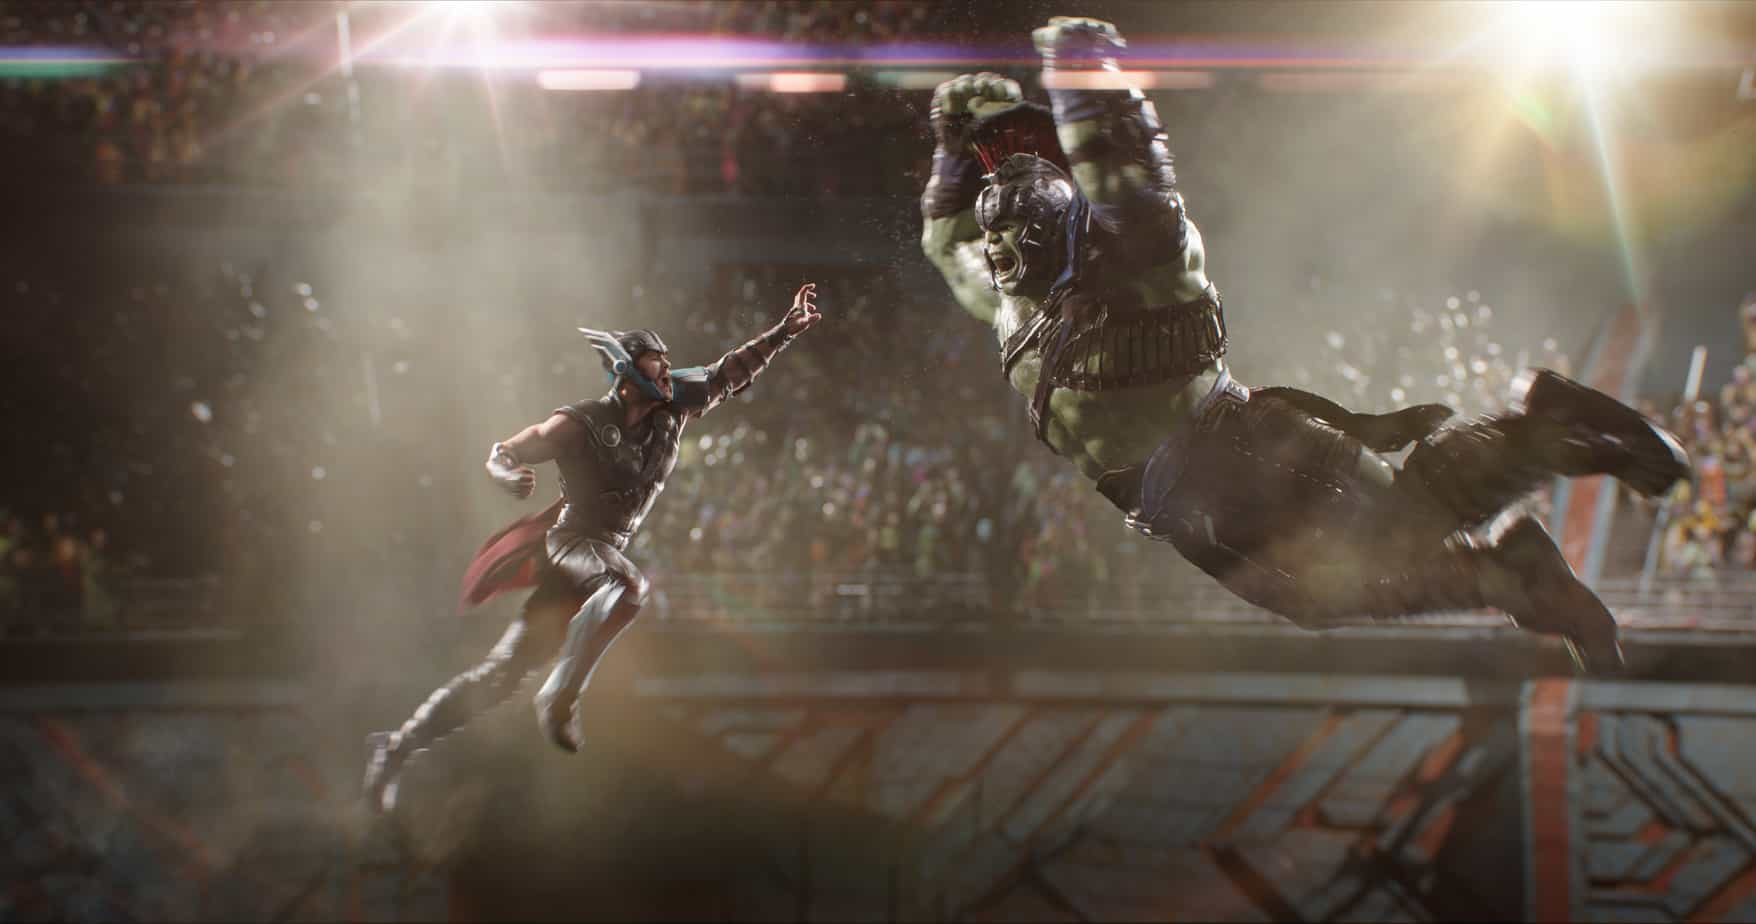 Exclusive THOR: RAGNAROK Interview with Kevin Feige, President of Marvel Studios at the Thor: Ragnarok Event. Dishes on his favorite Avenger and future of The Hulk.